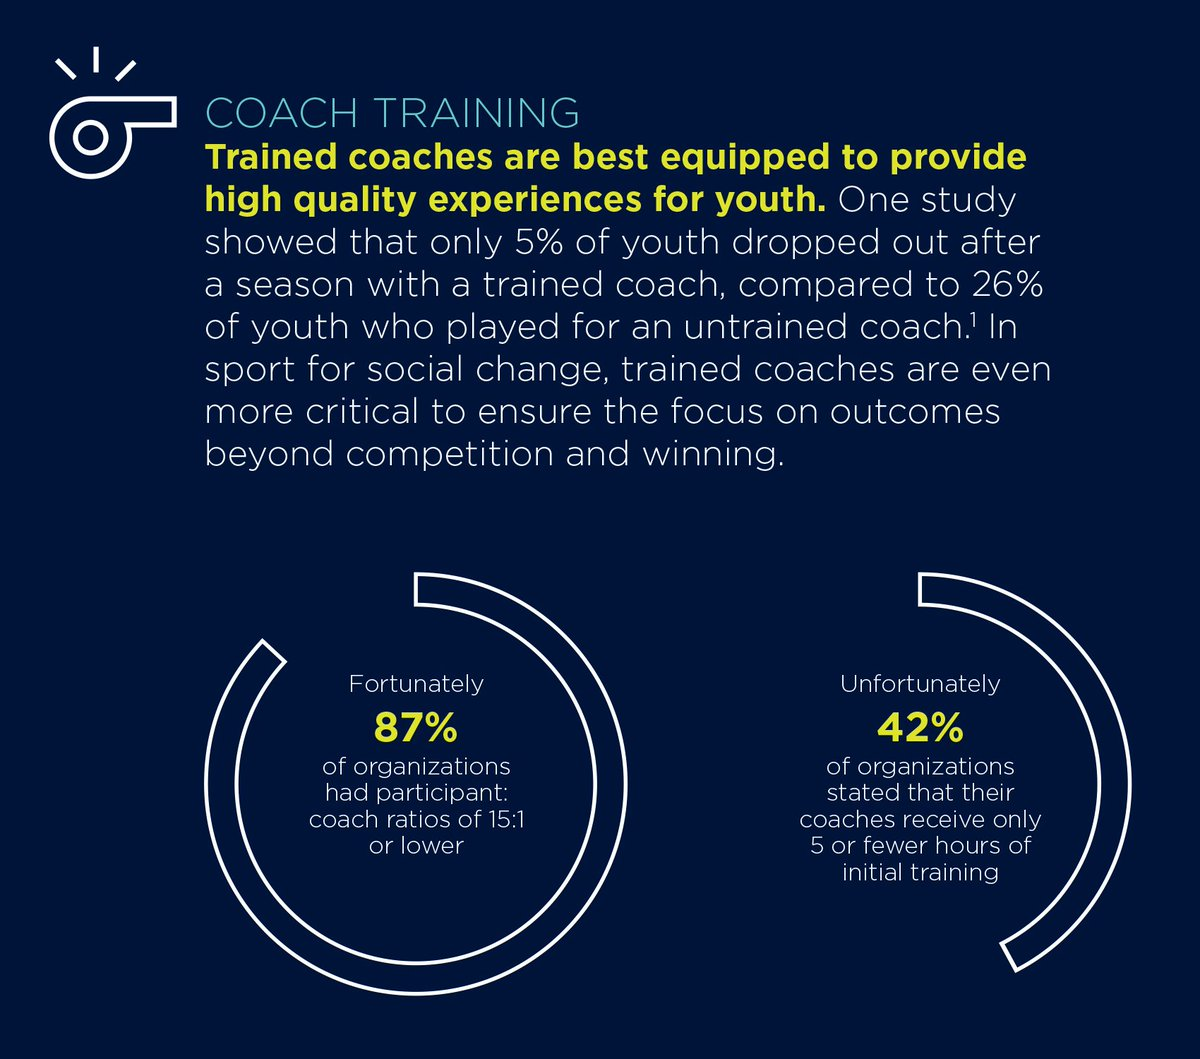 Training coaches is essential for achieving social outcomes through sport. Explore this trend in our State of Sport for Good 2017: https://t.co/COAKkPflsj